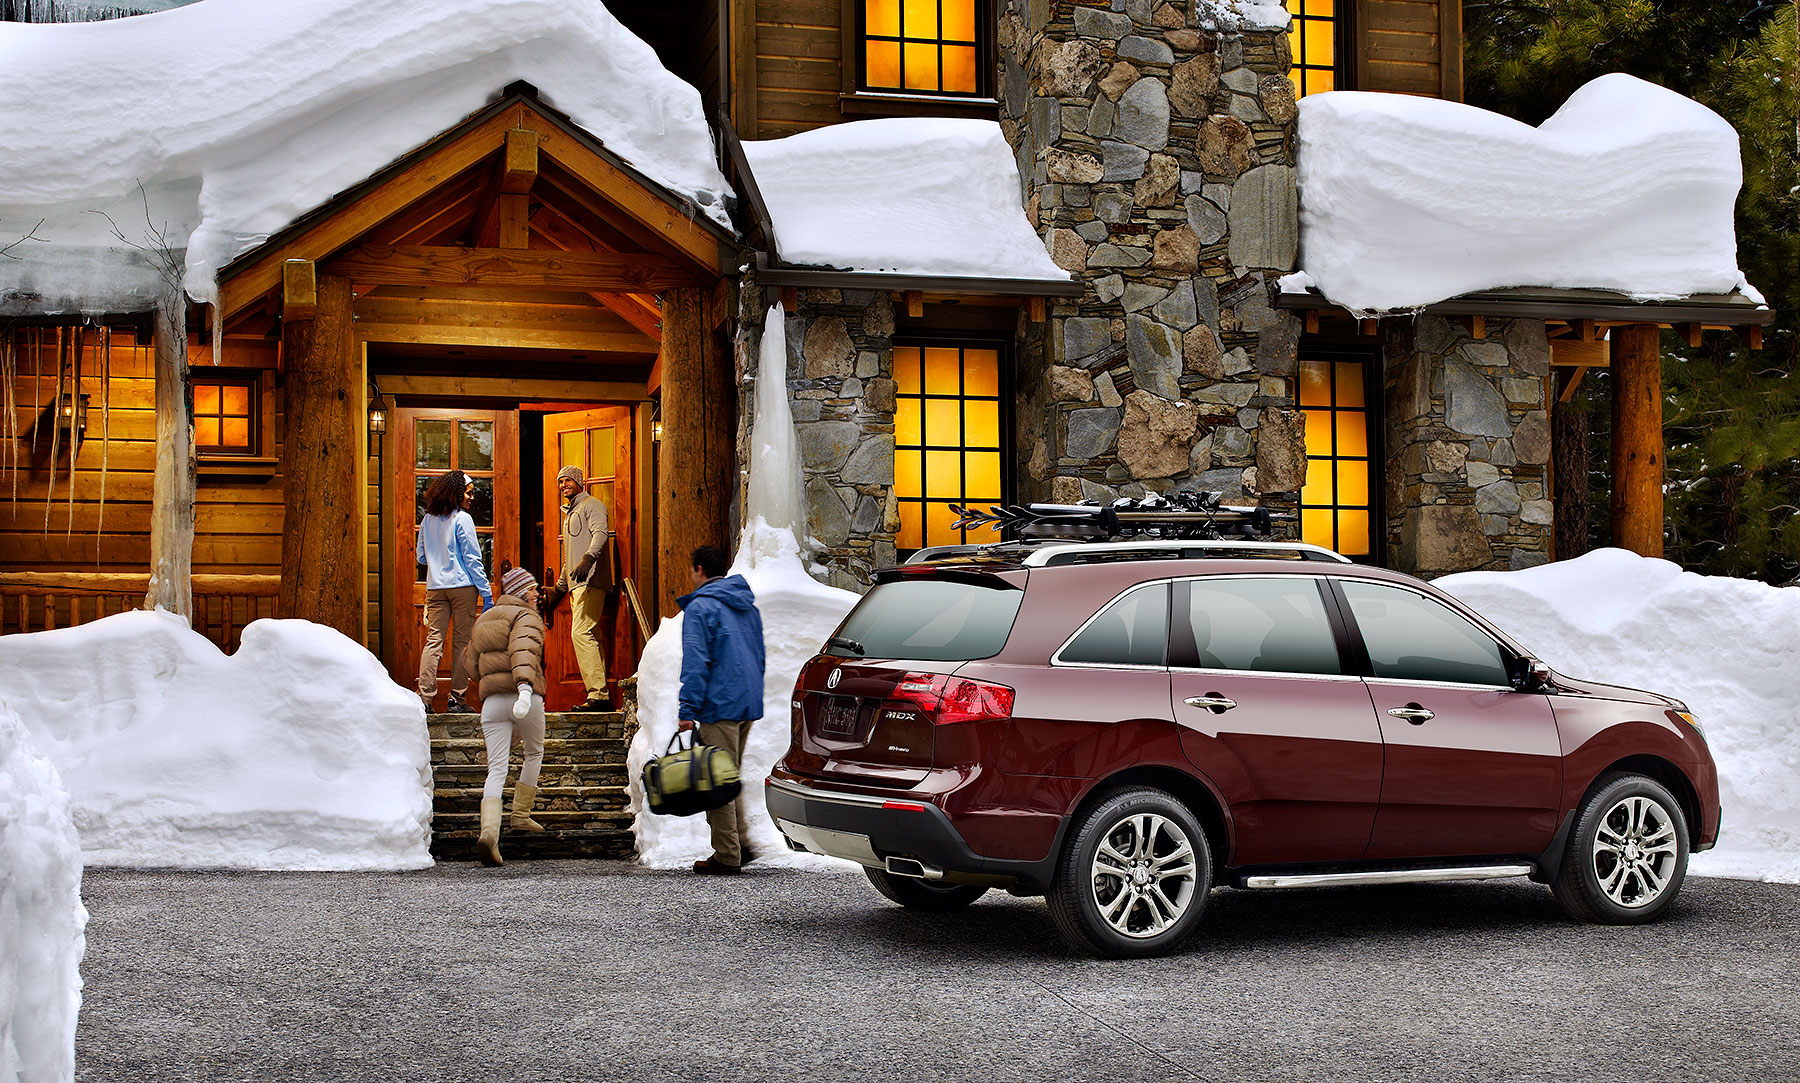 Acura SUV at ski lodge in winter Automotive Photography| Dovis Bird Agency Reps